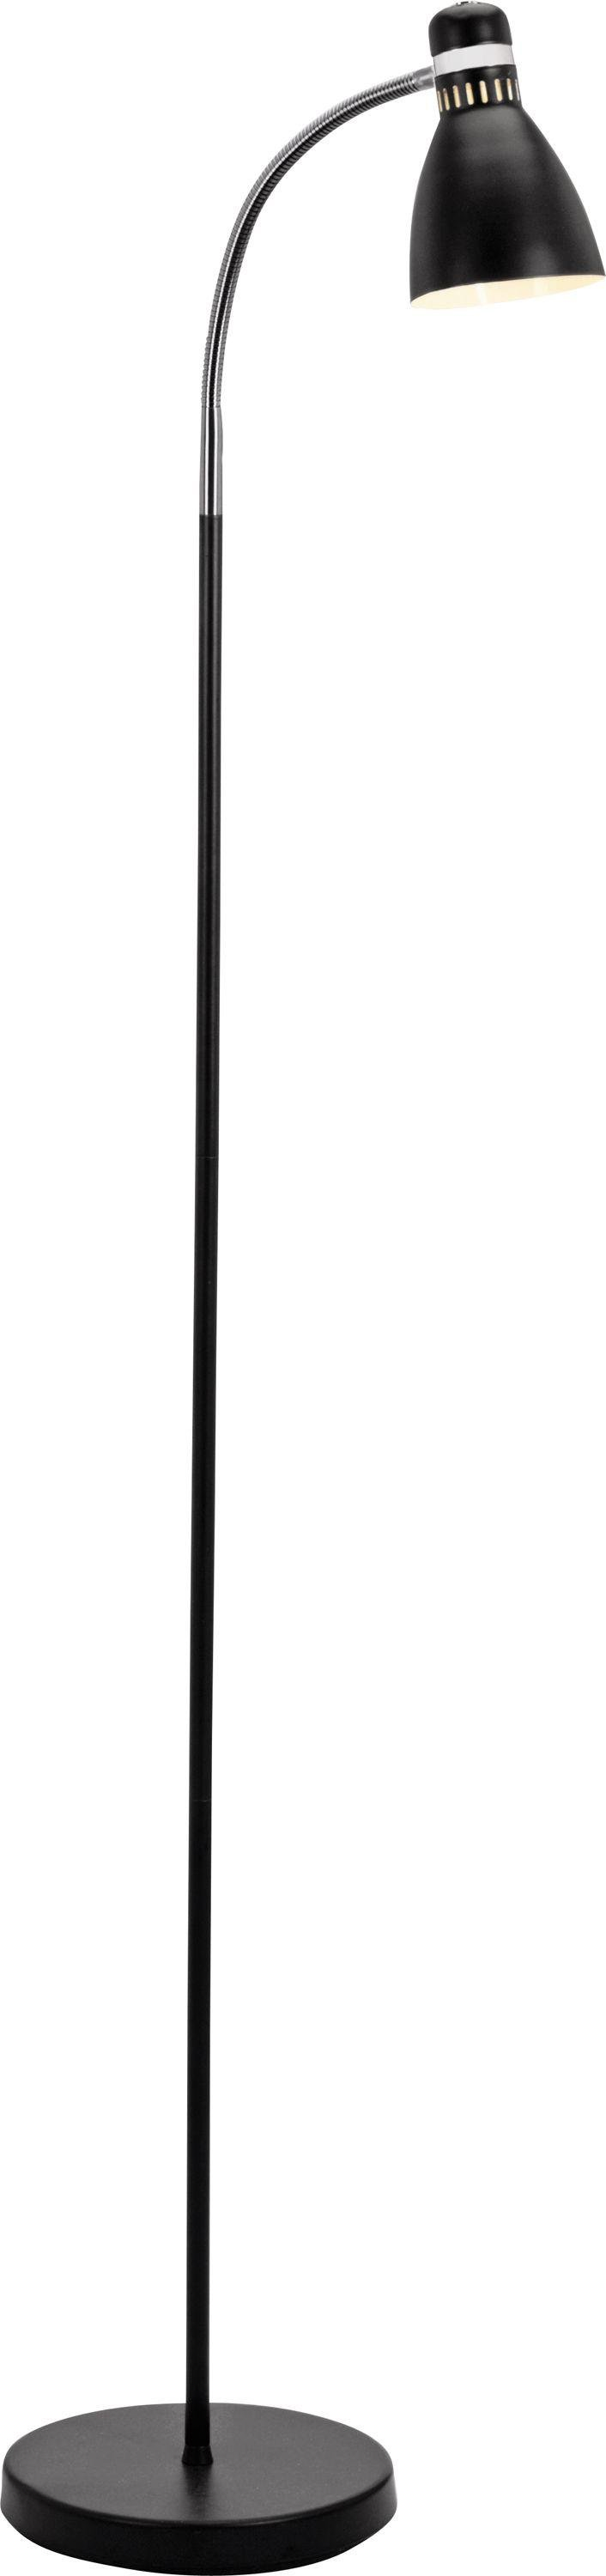 colourmatch dent desk style floor lamp  jet black.